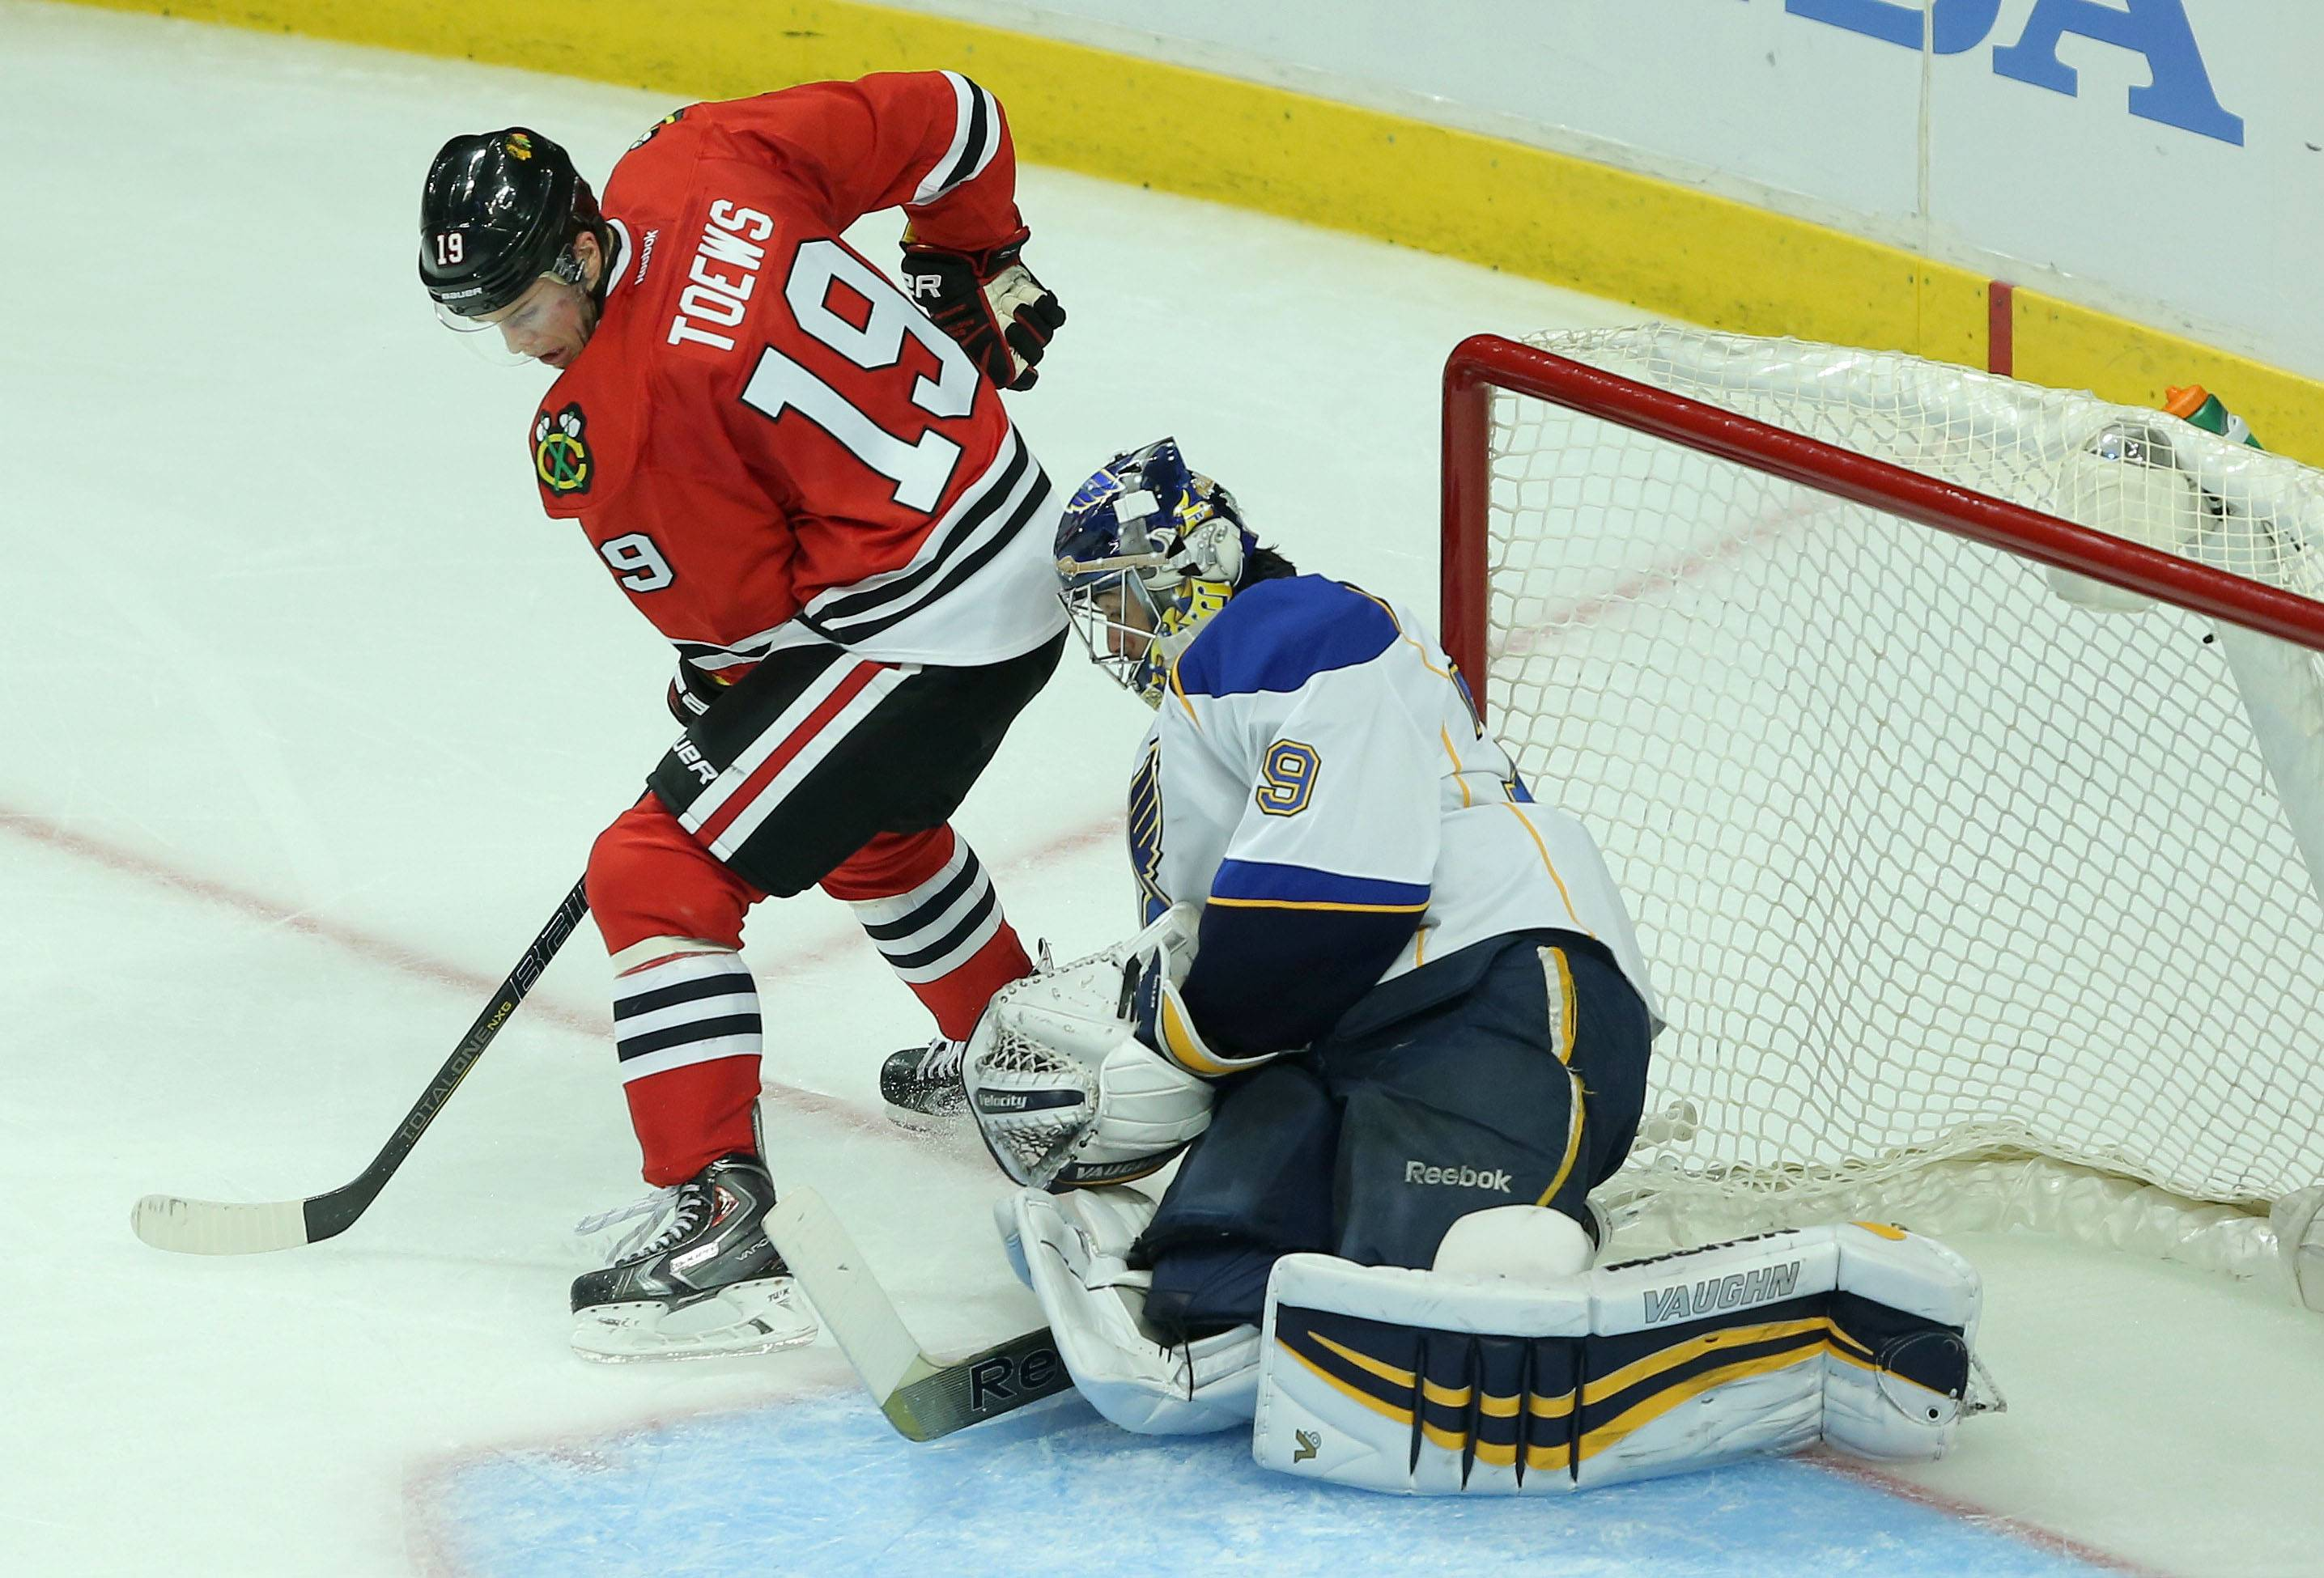 Blackhawks center Jonathan Toews pressures St. Louis Blues goalie Ryan Miller during game 3 of the NHL first-round Stanley Cup playoffs in Chicago Monday night.